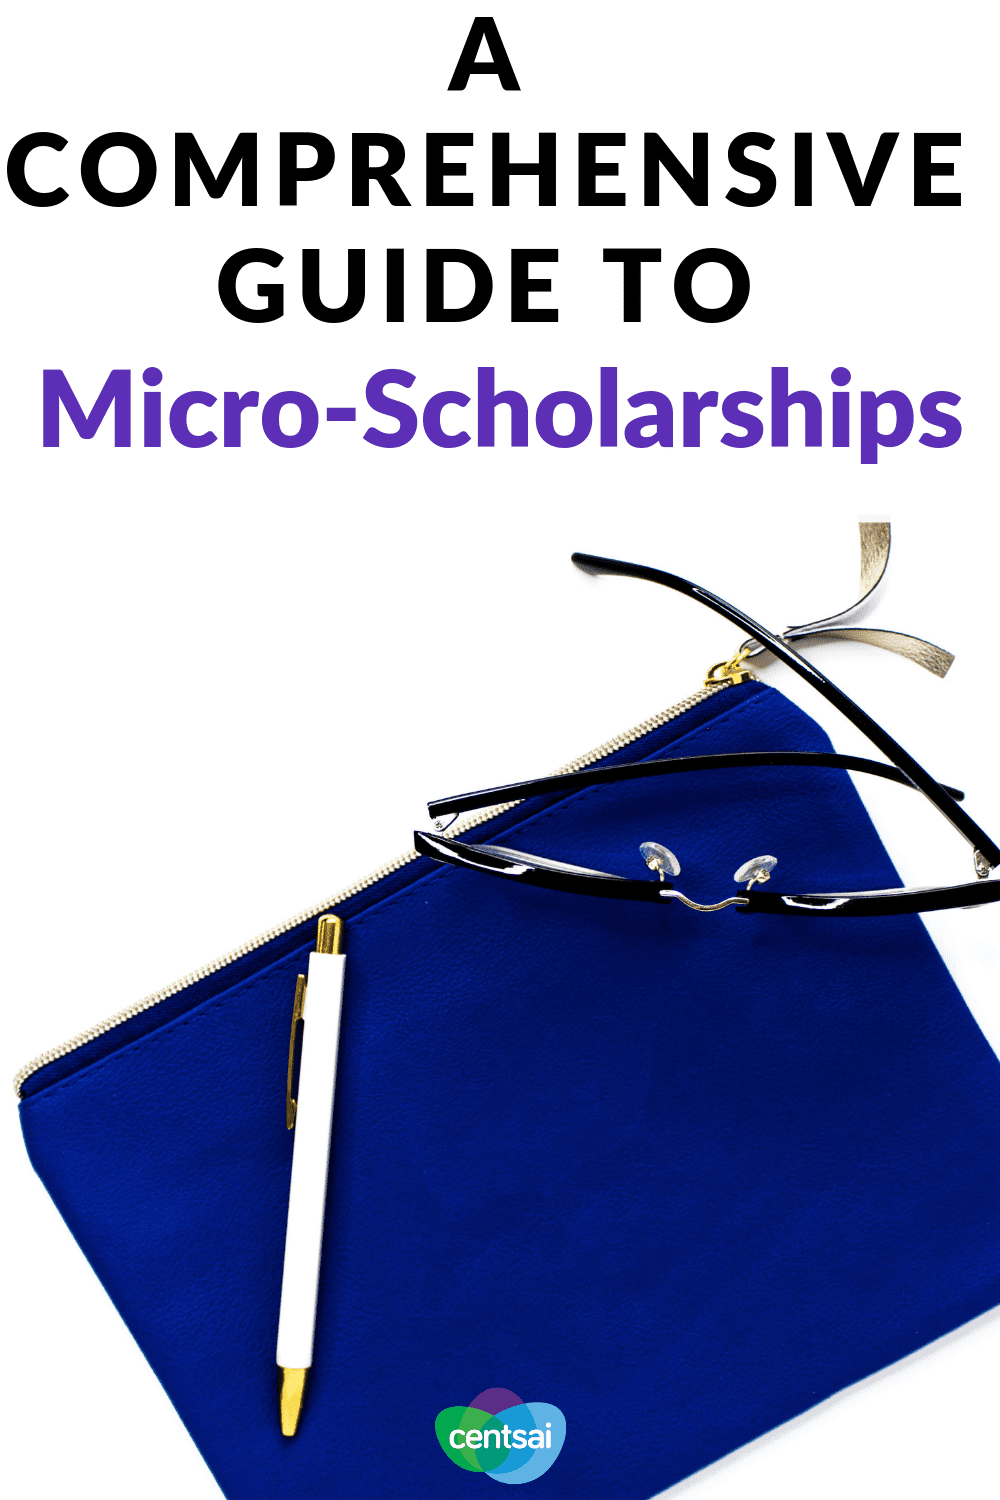 A Comprehensive Guide to Micro-Scholarships. Need more money to pay for college? Then micro-scholarships may be just the thing for you. Learn what they are and how to earn them. #microscholarships #college #scholarships